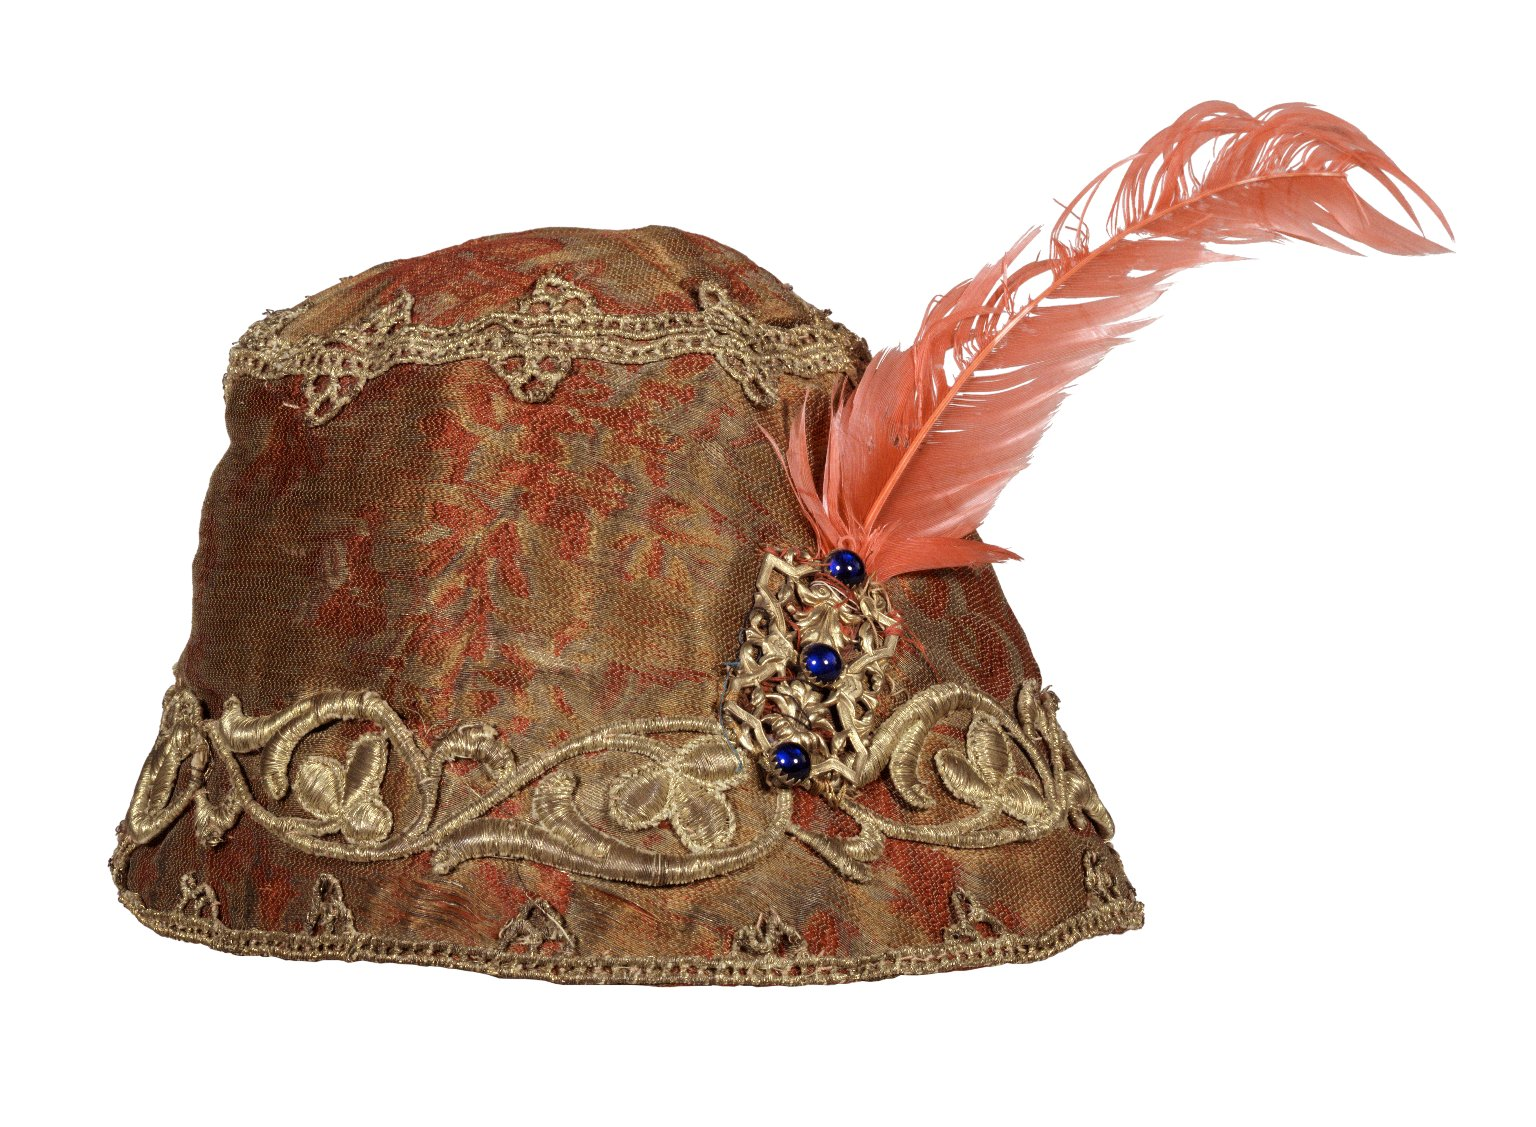 Green and red brocaded cap with gold trim and red feather